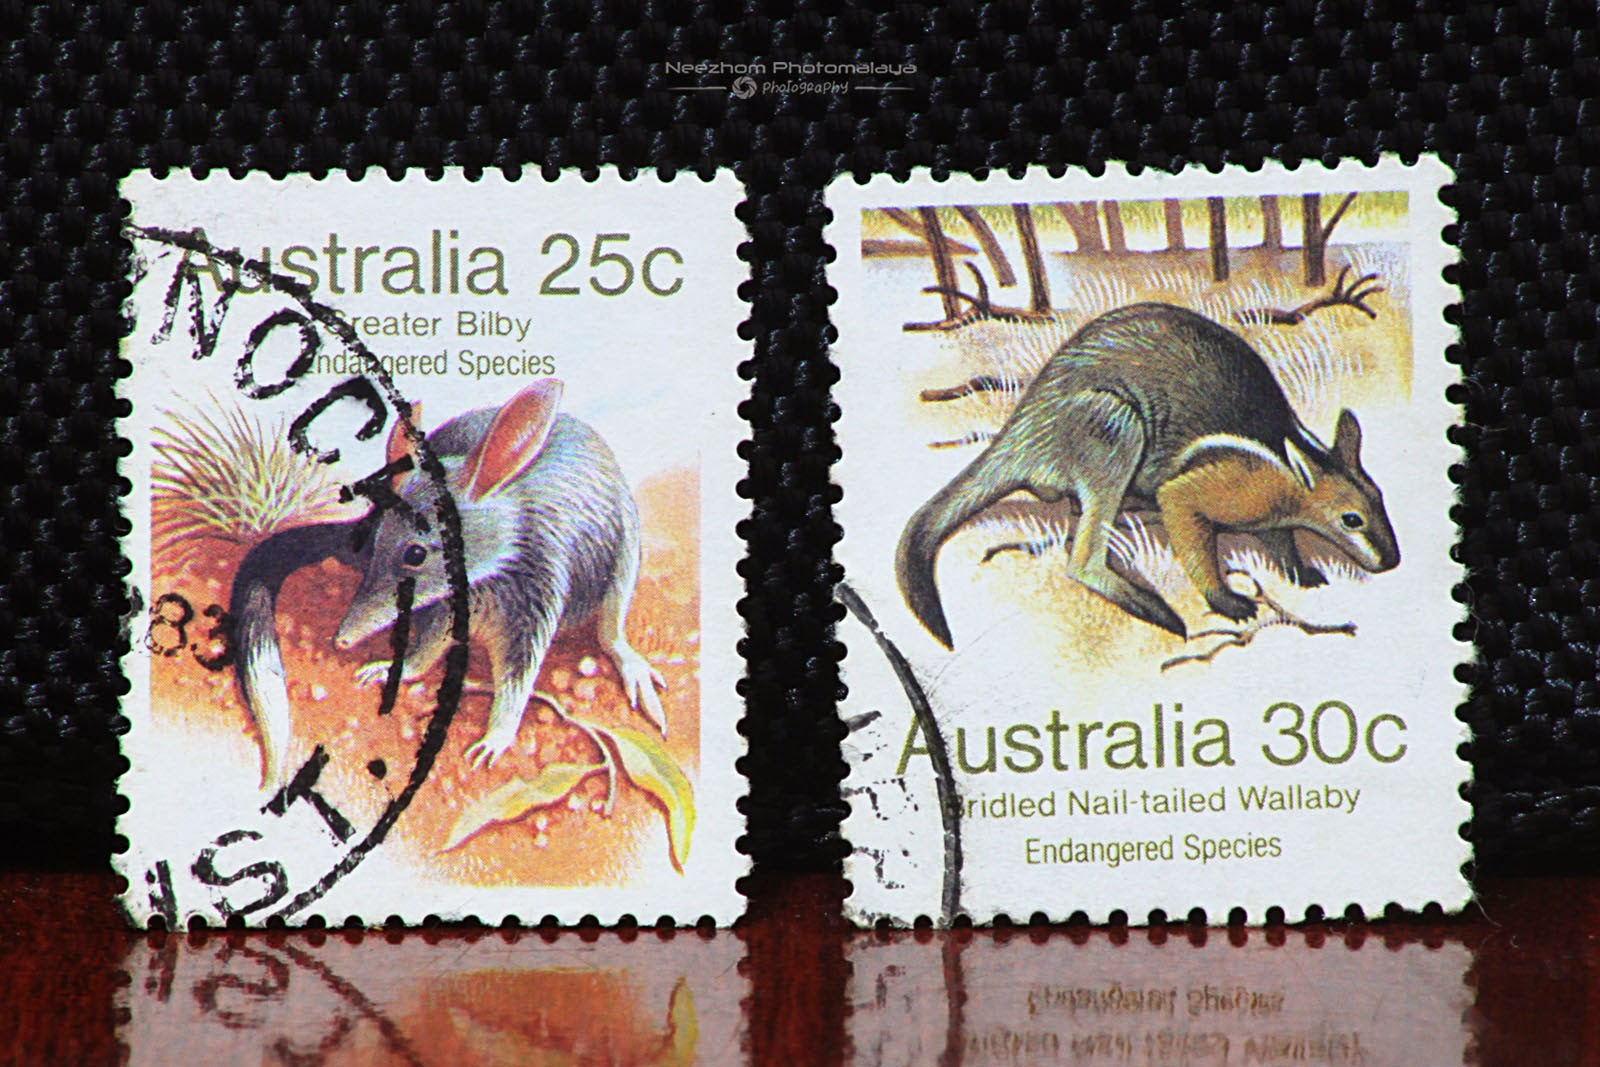 Australia 1981 Endangered Species - Greater Bilby 25 cents, Bridled Nail-tailed Wallaby 30 cents